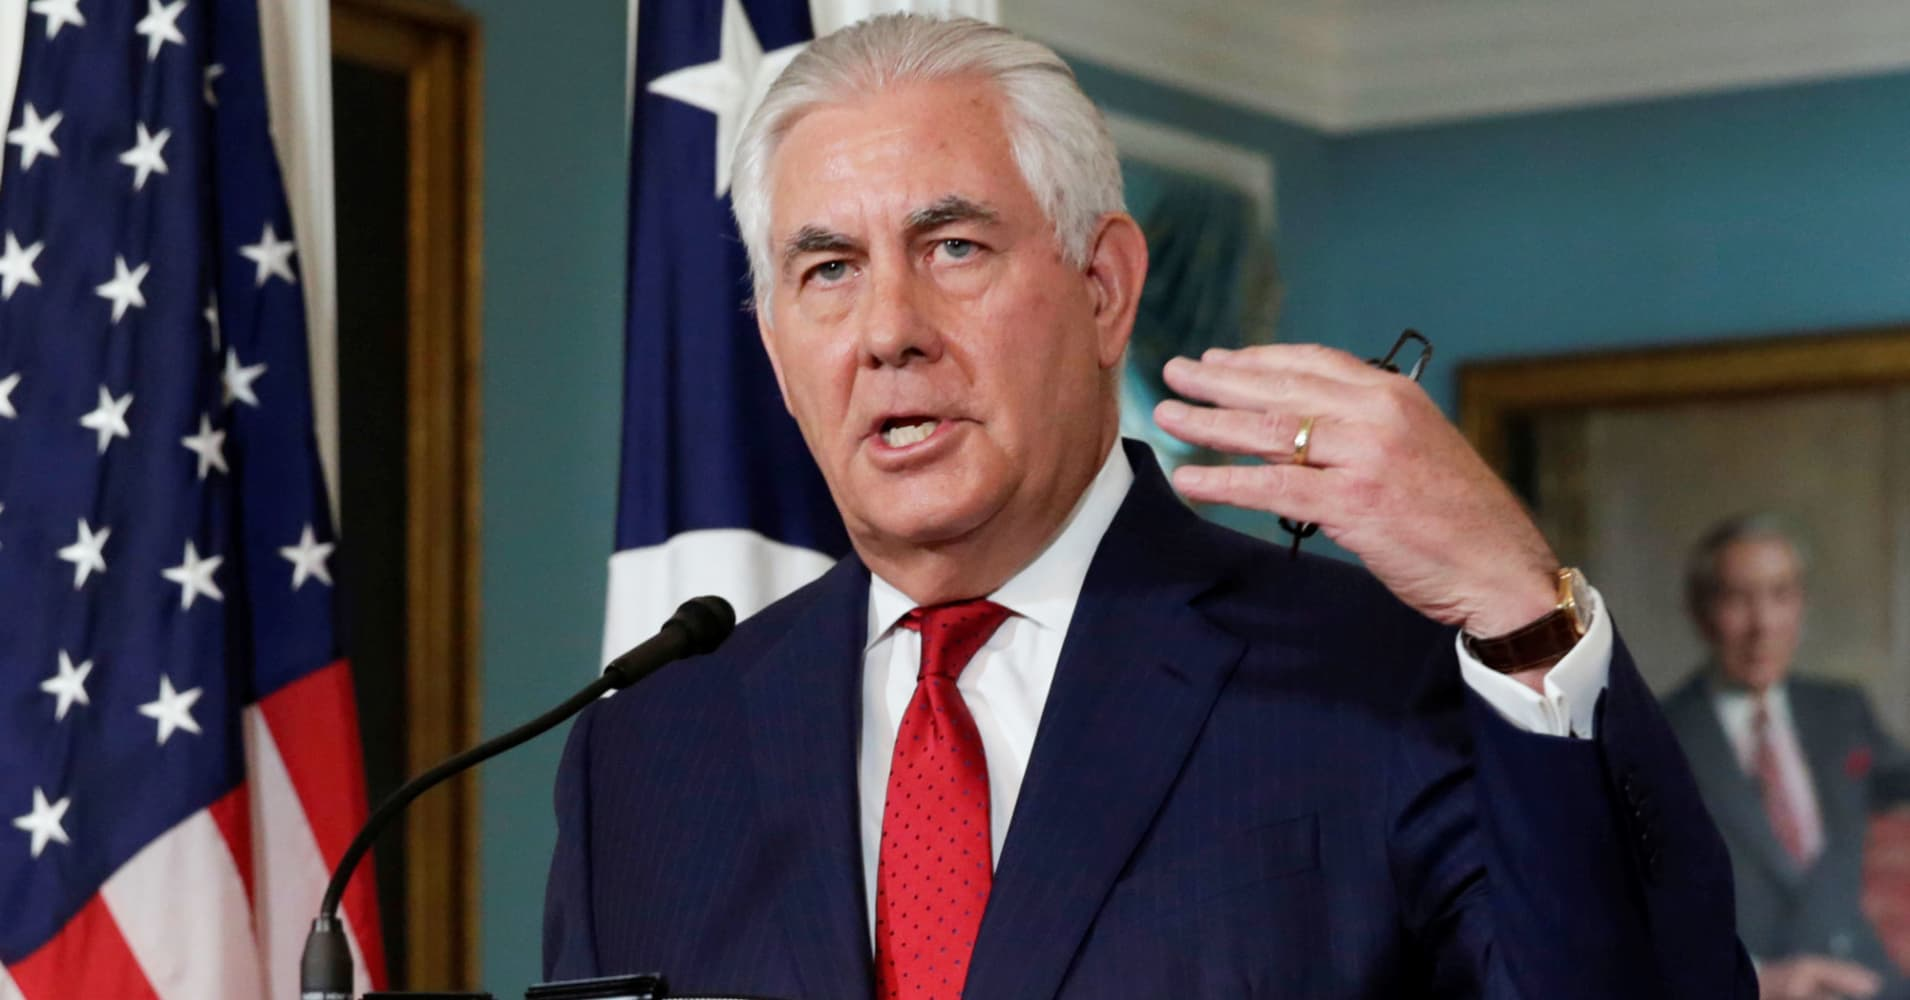 https://fm.cnbc.com/applications/cnbc.com/resources/img/editorial/2017/10/04/104752265-RTS1F45X-rex-tillerson.1910x1000.jpg